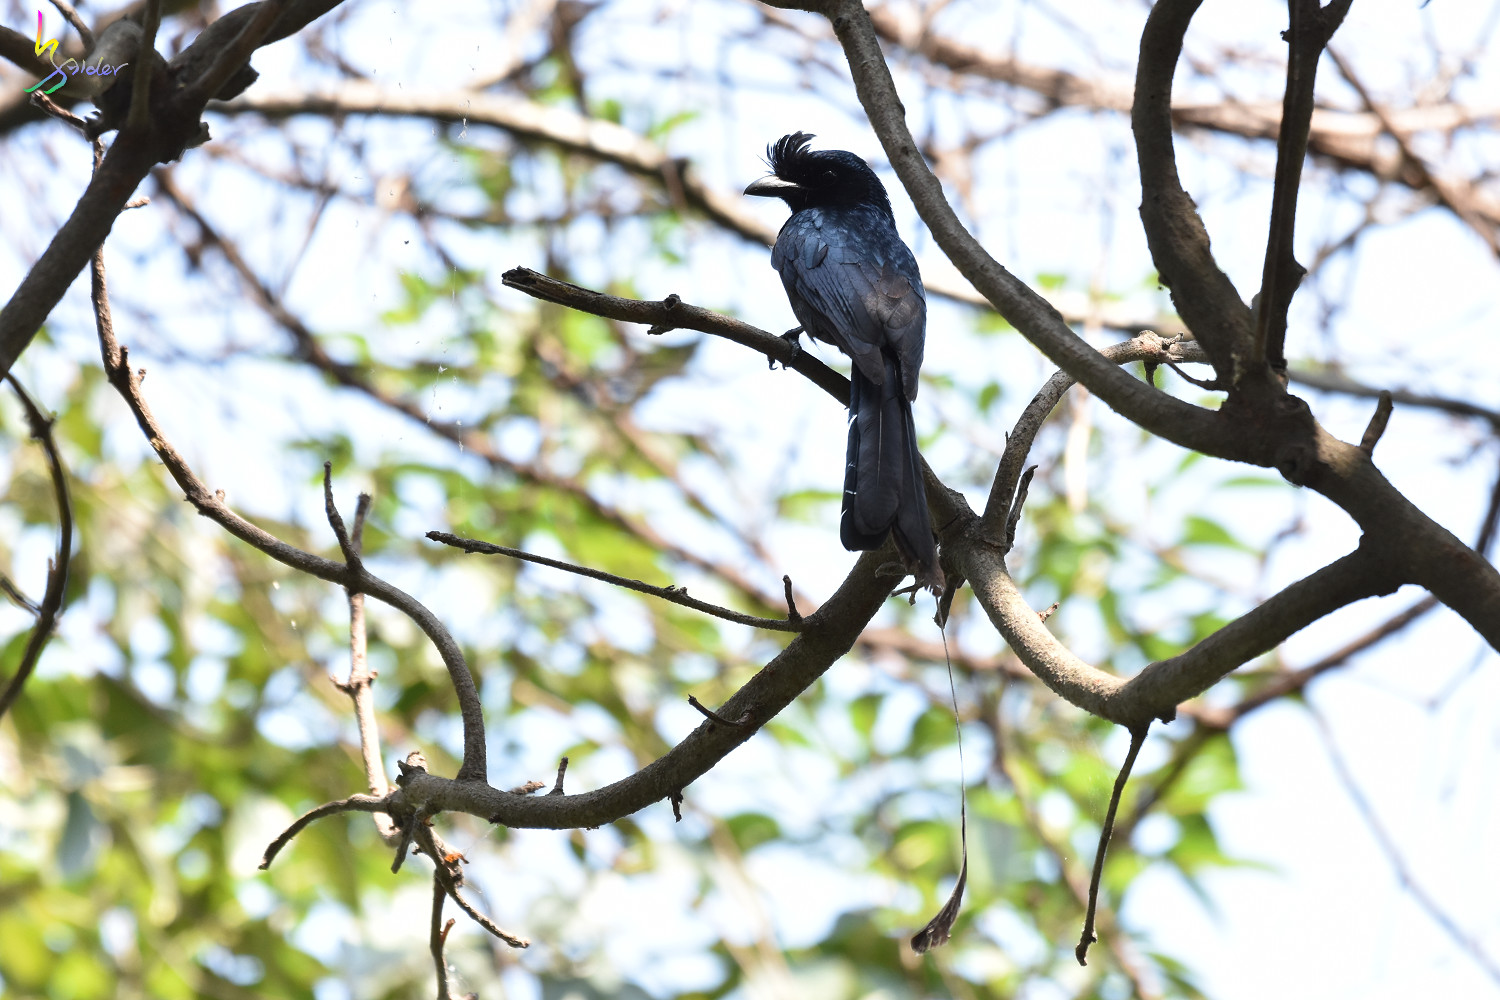 Greater_Racket-tailed_Drongo_2736